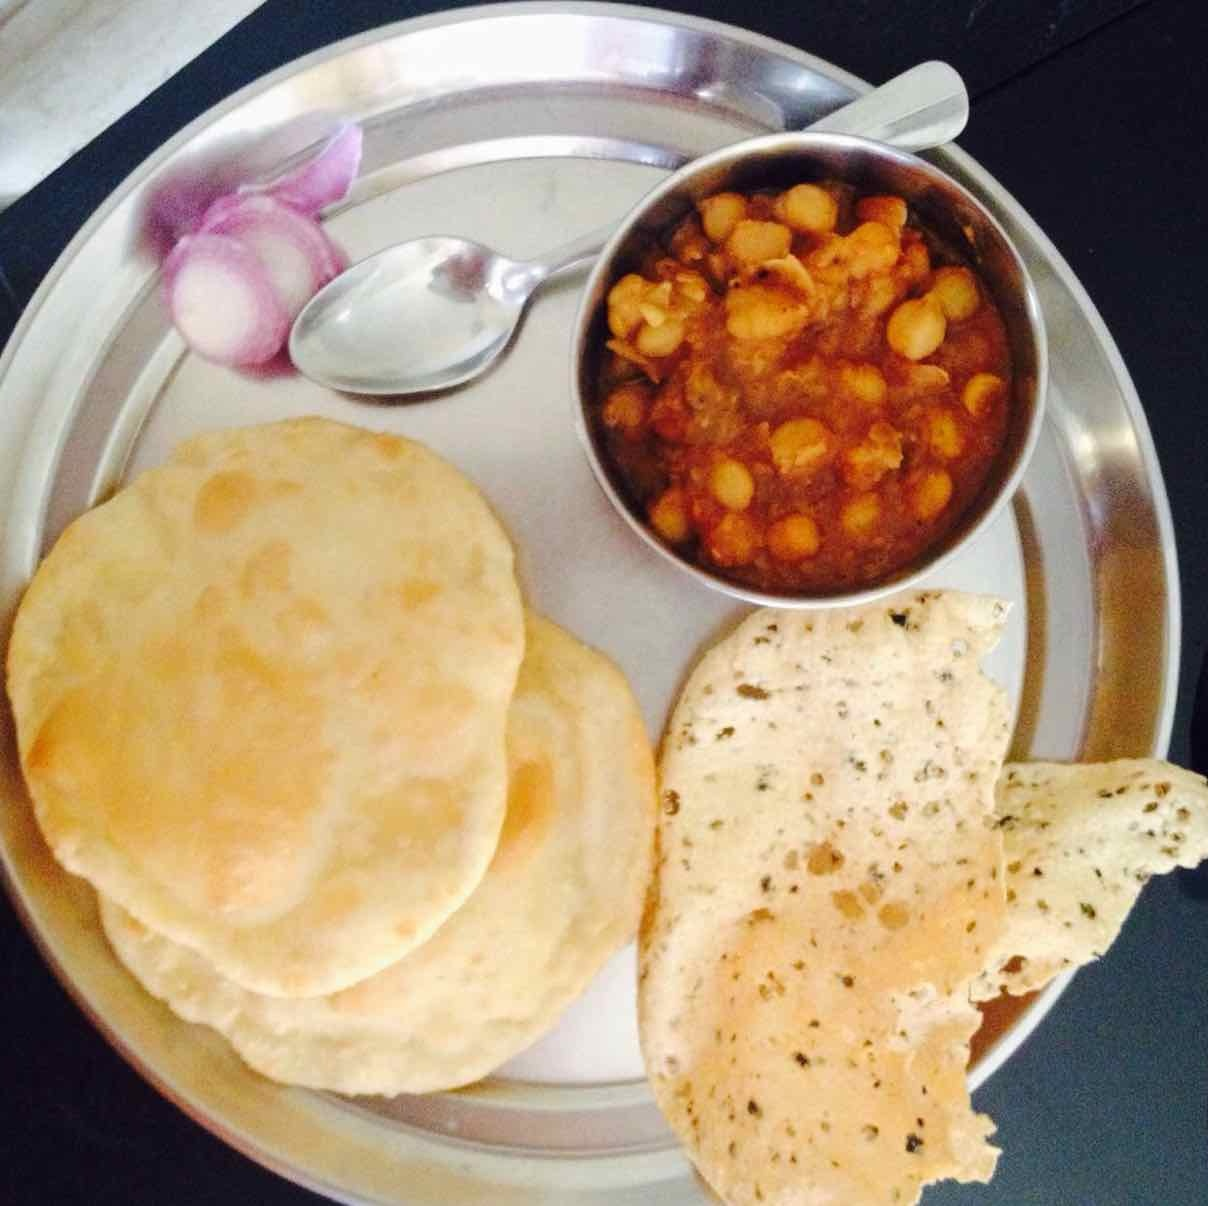 How to make chole bhatoore